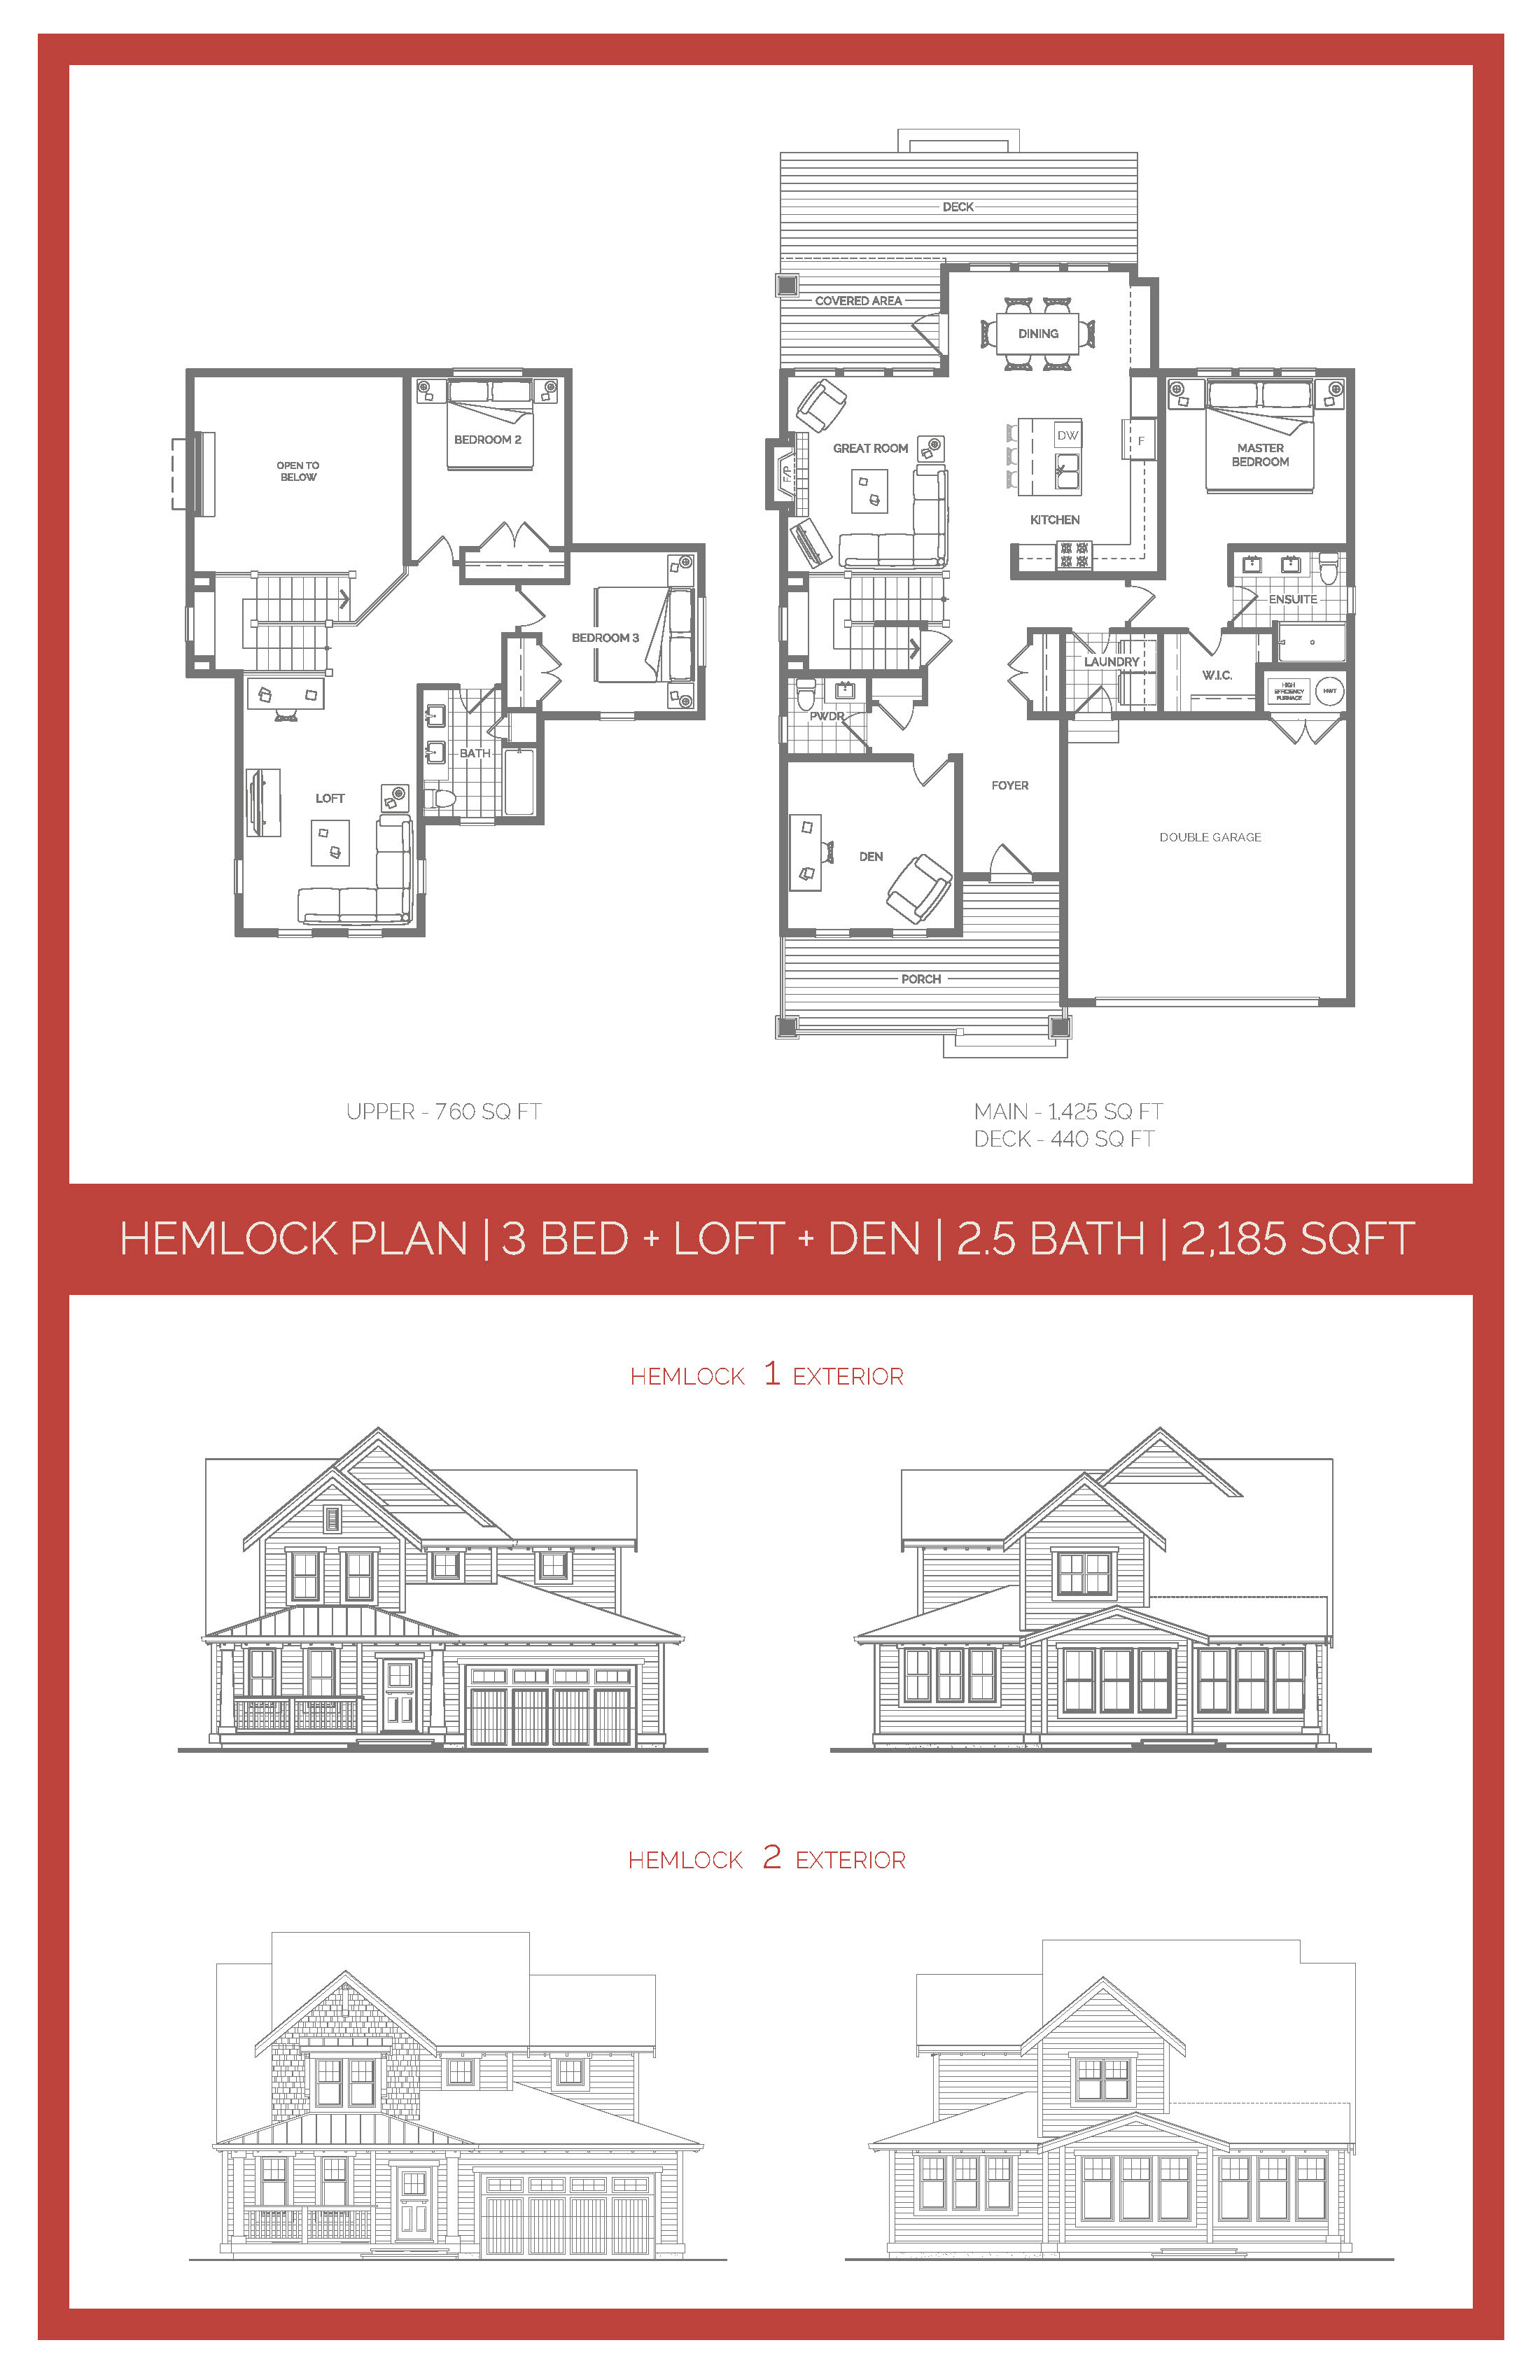 The Hemlock Floor Plan